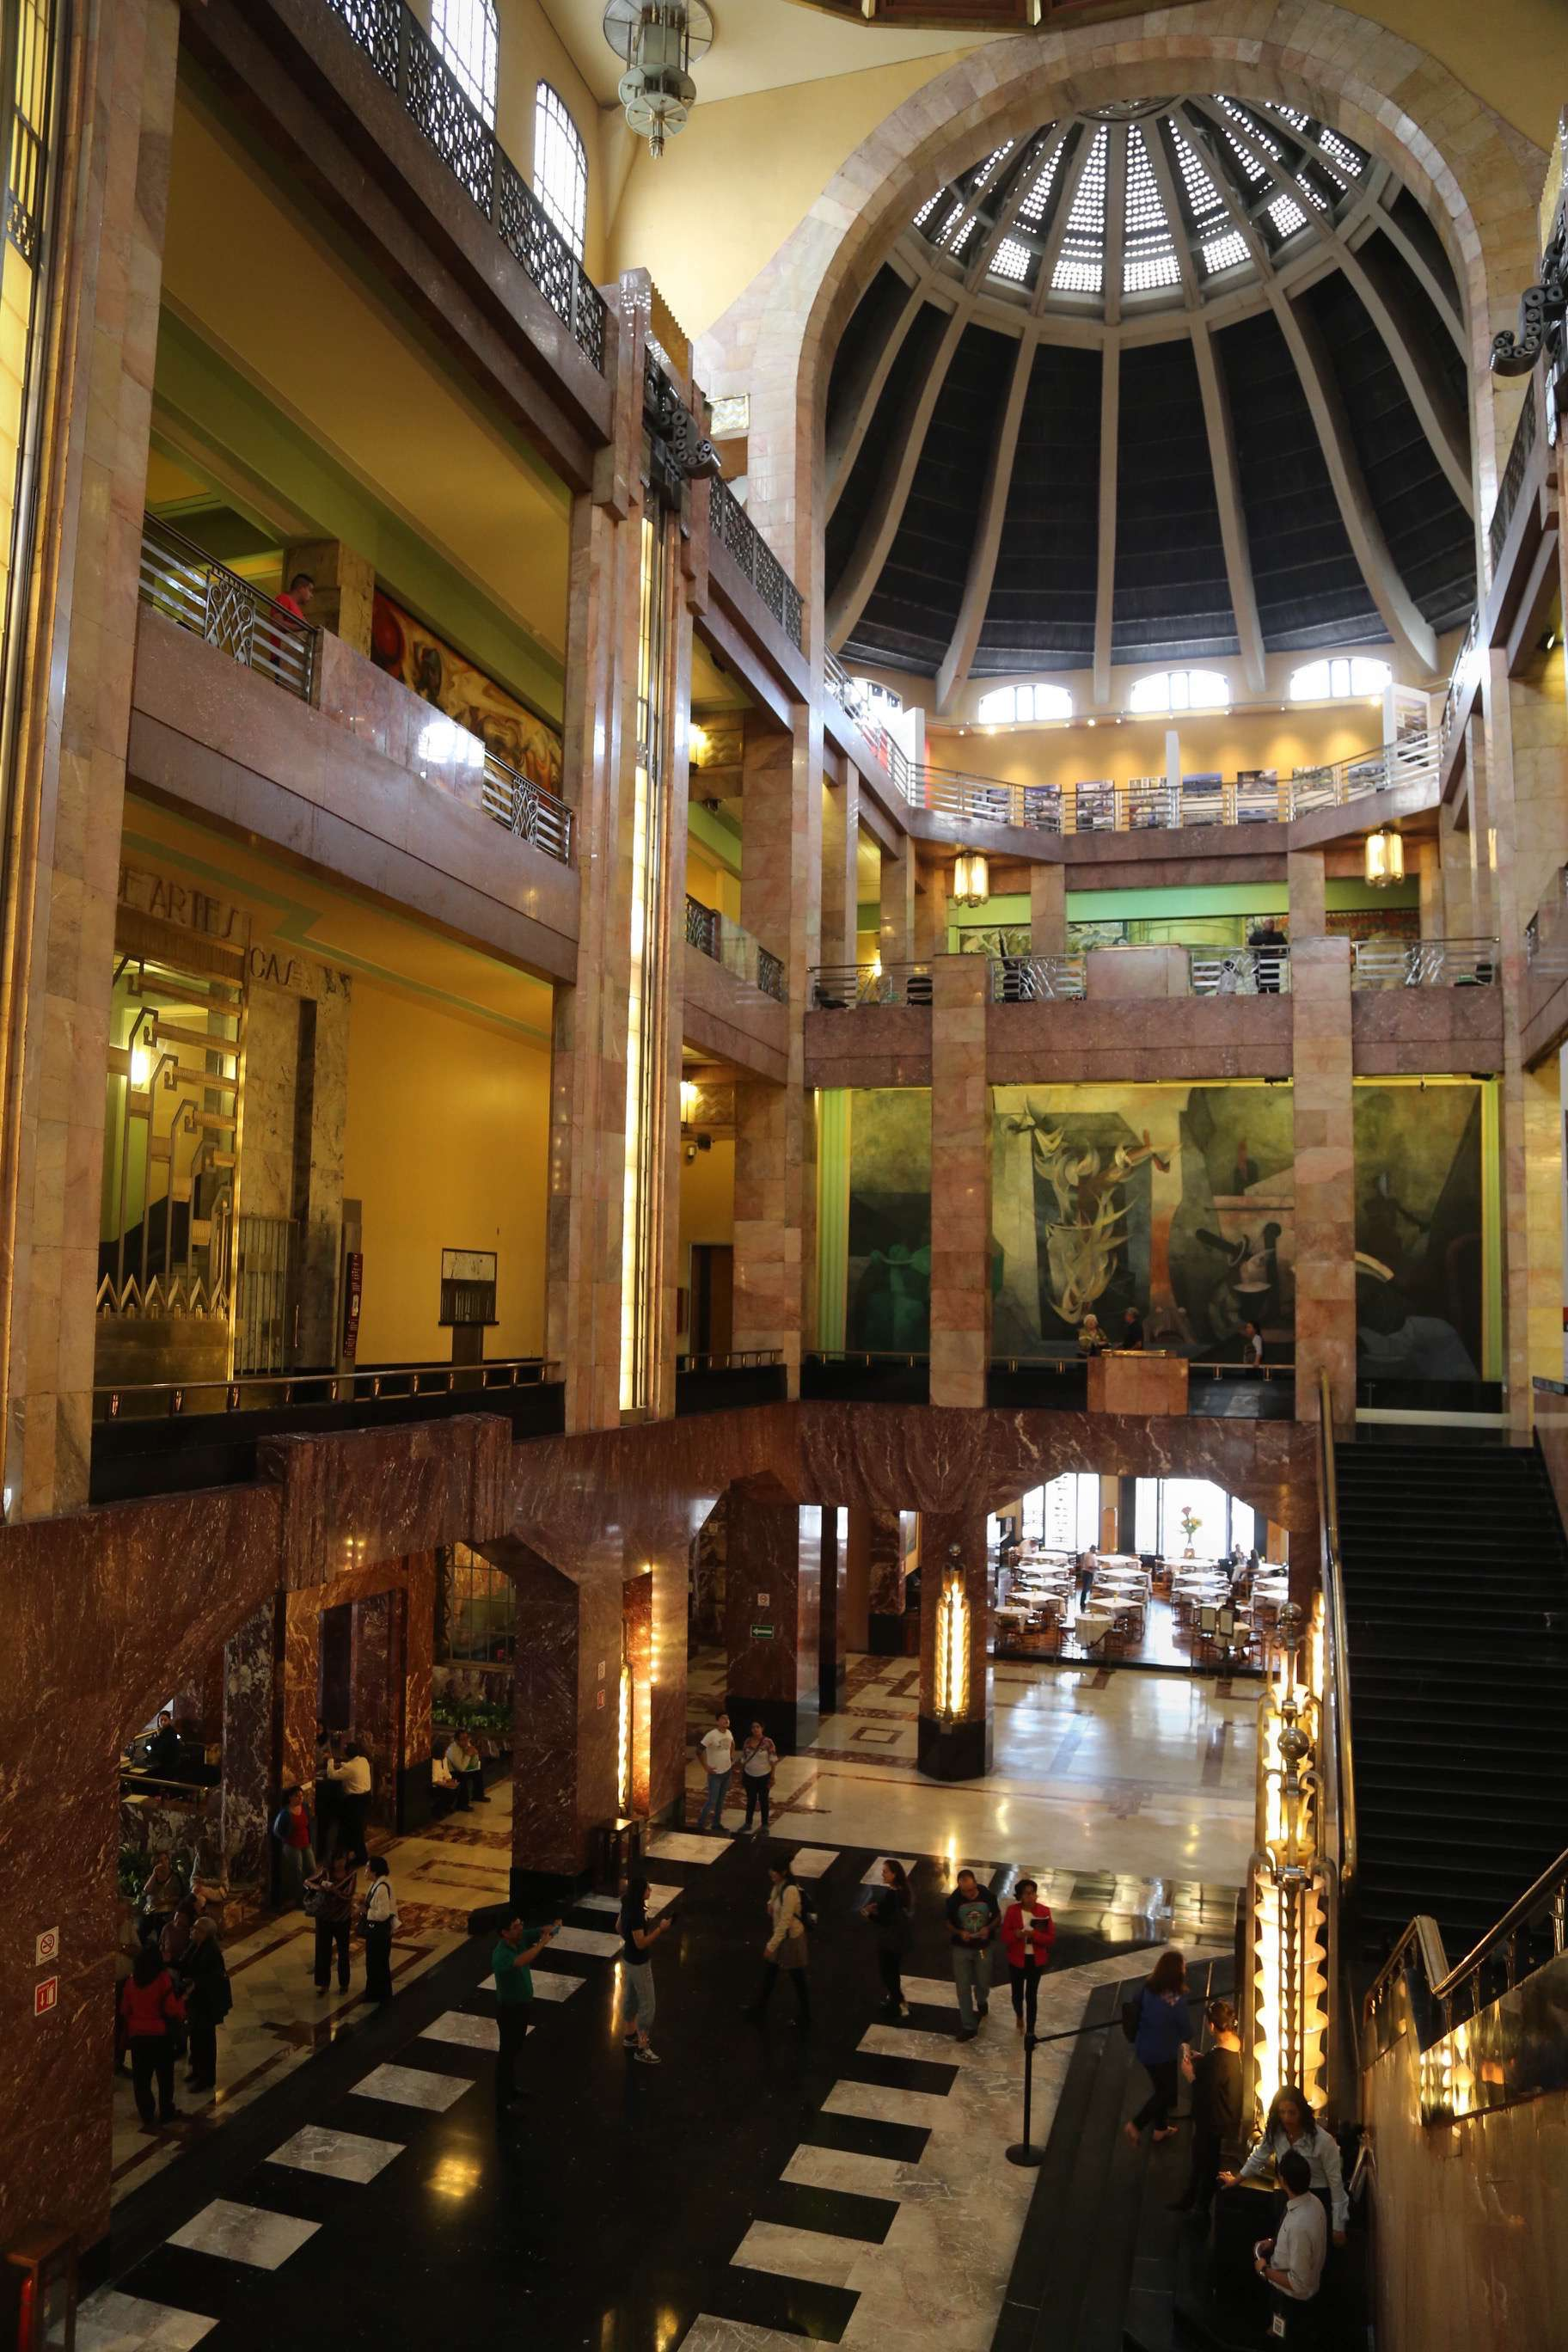 On the outside Bellas Artes is a blend of Newclassical and Art Nouveau, but the inside is all Art Deco, giving the venue an odd, but pleasing mix of styles.